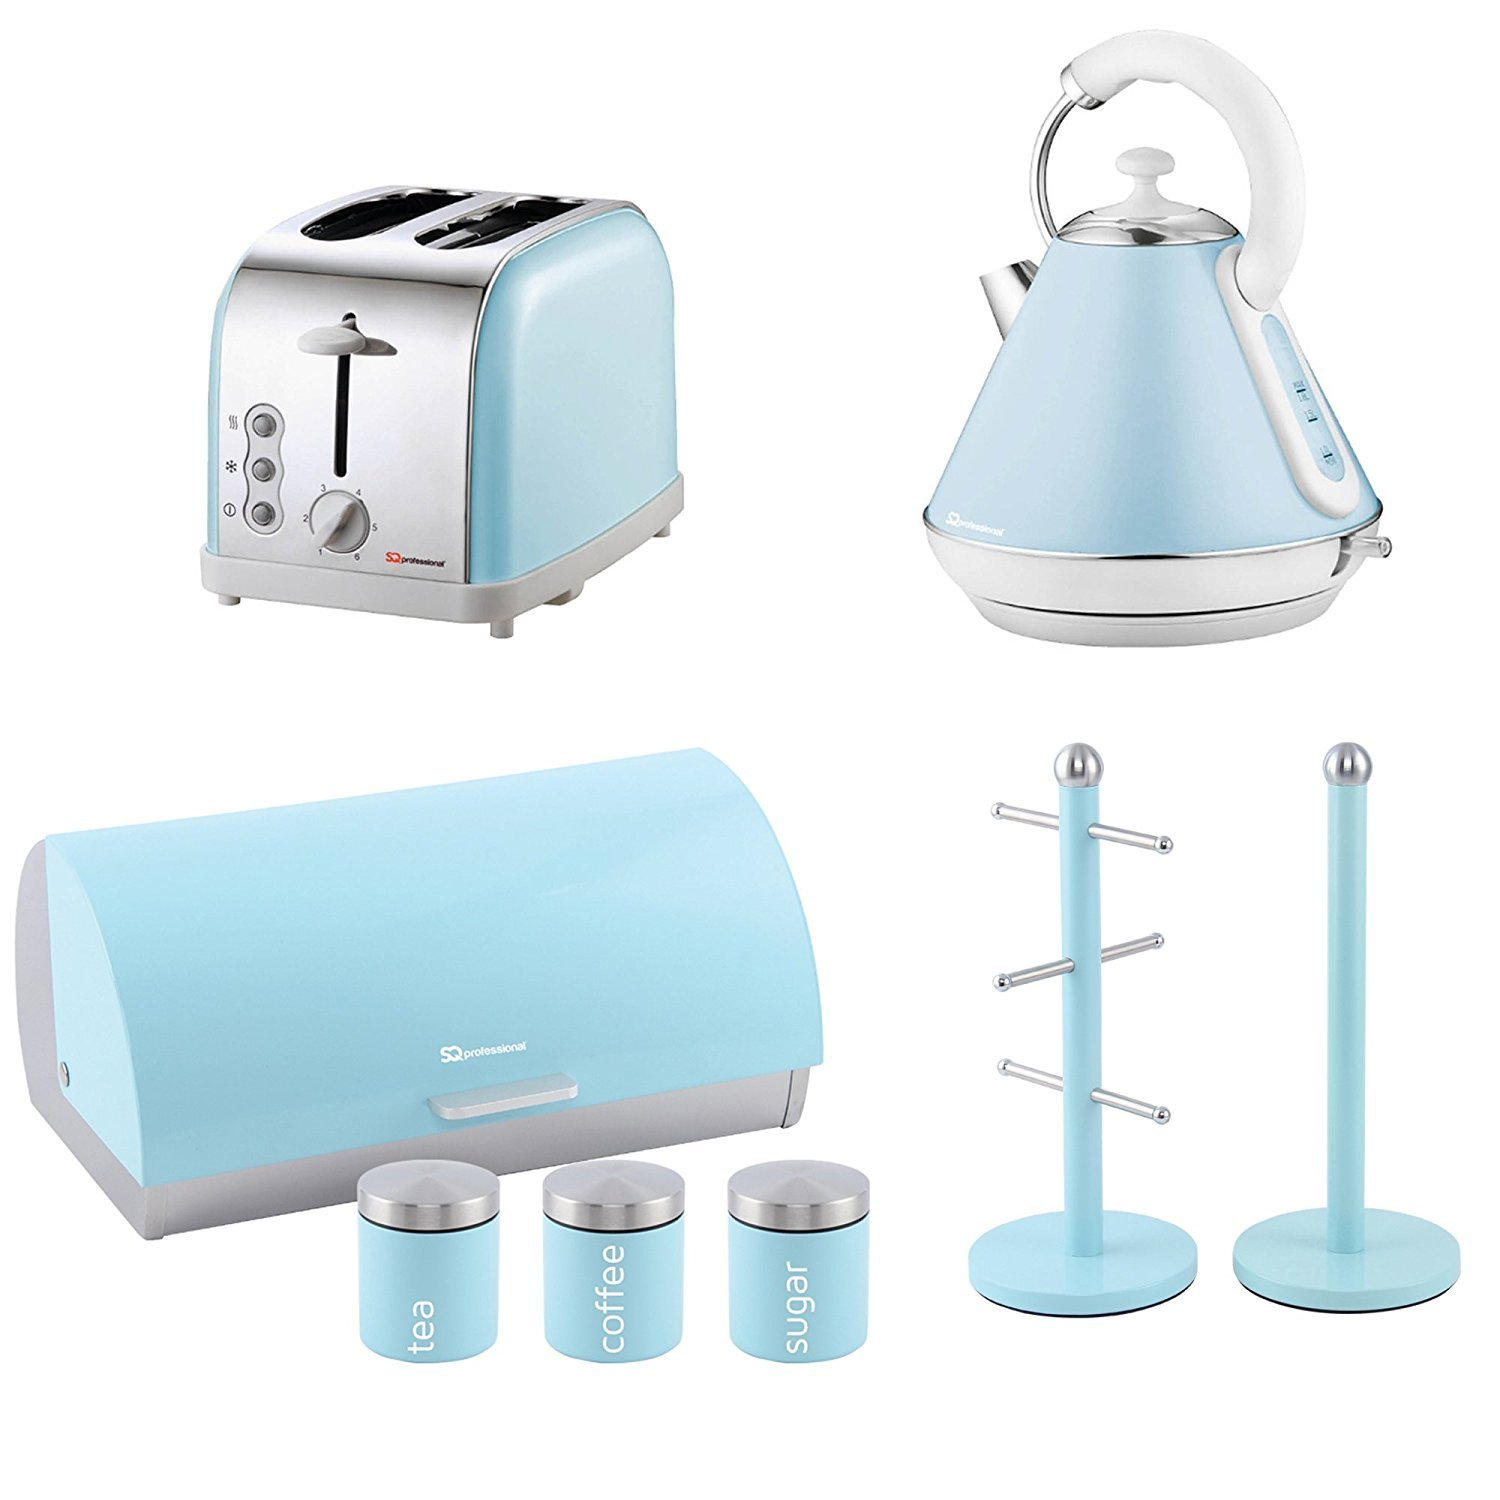 Matching Kitchen Set of Four items: Toaster, Kettle, Bread bin and canisters and Mug Tree and Kitchen Roll Holder Stand Set in Light Blue, Pink or Mint Green (Light Blue) SQ Professional